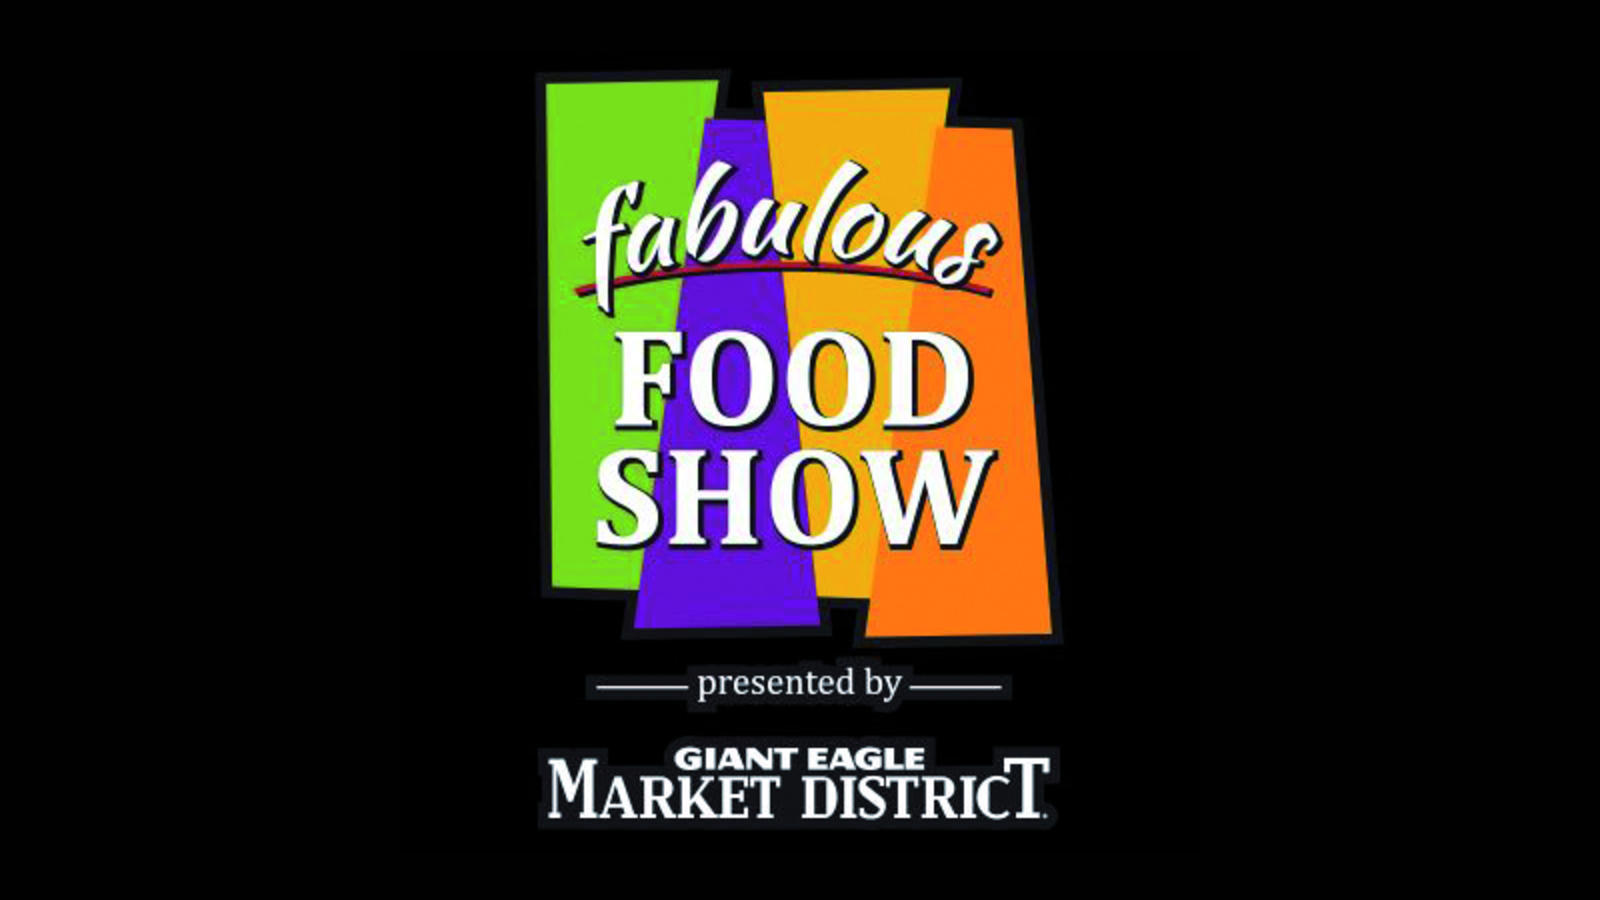 The Fabulous Food Show